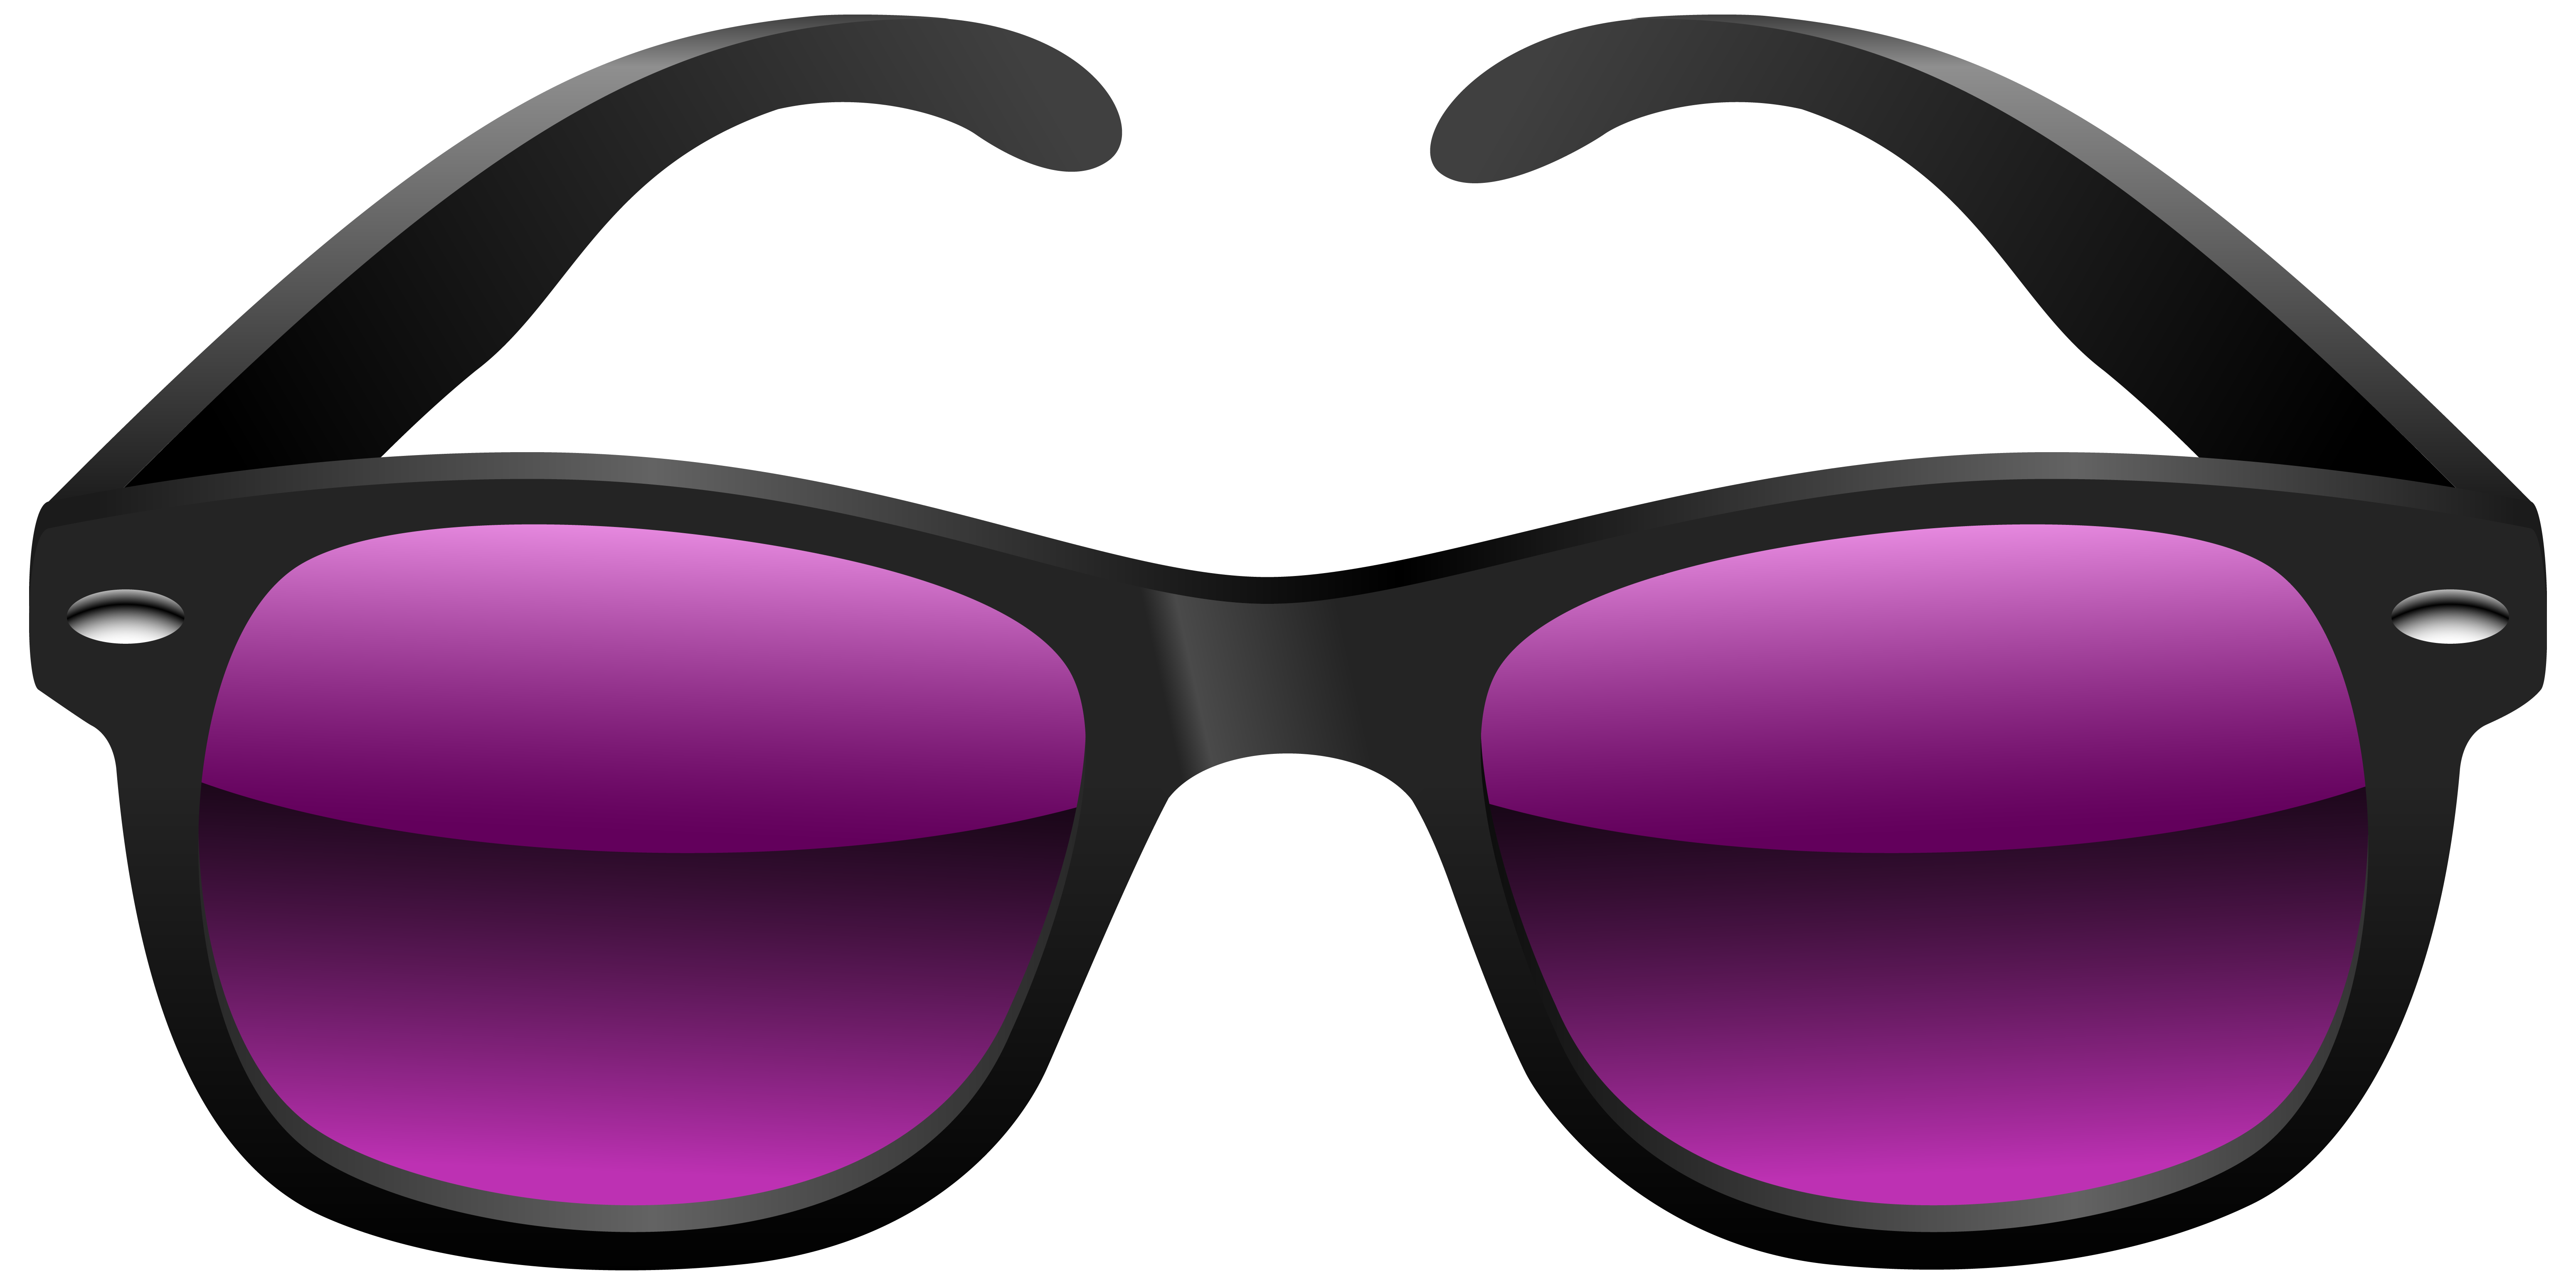 Sunglasses clipart picart. Black and purple sunglass